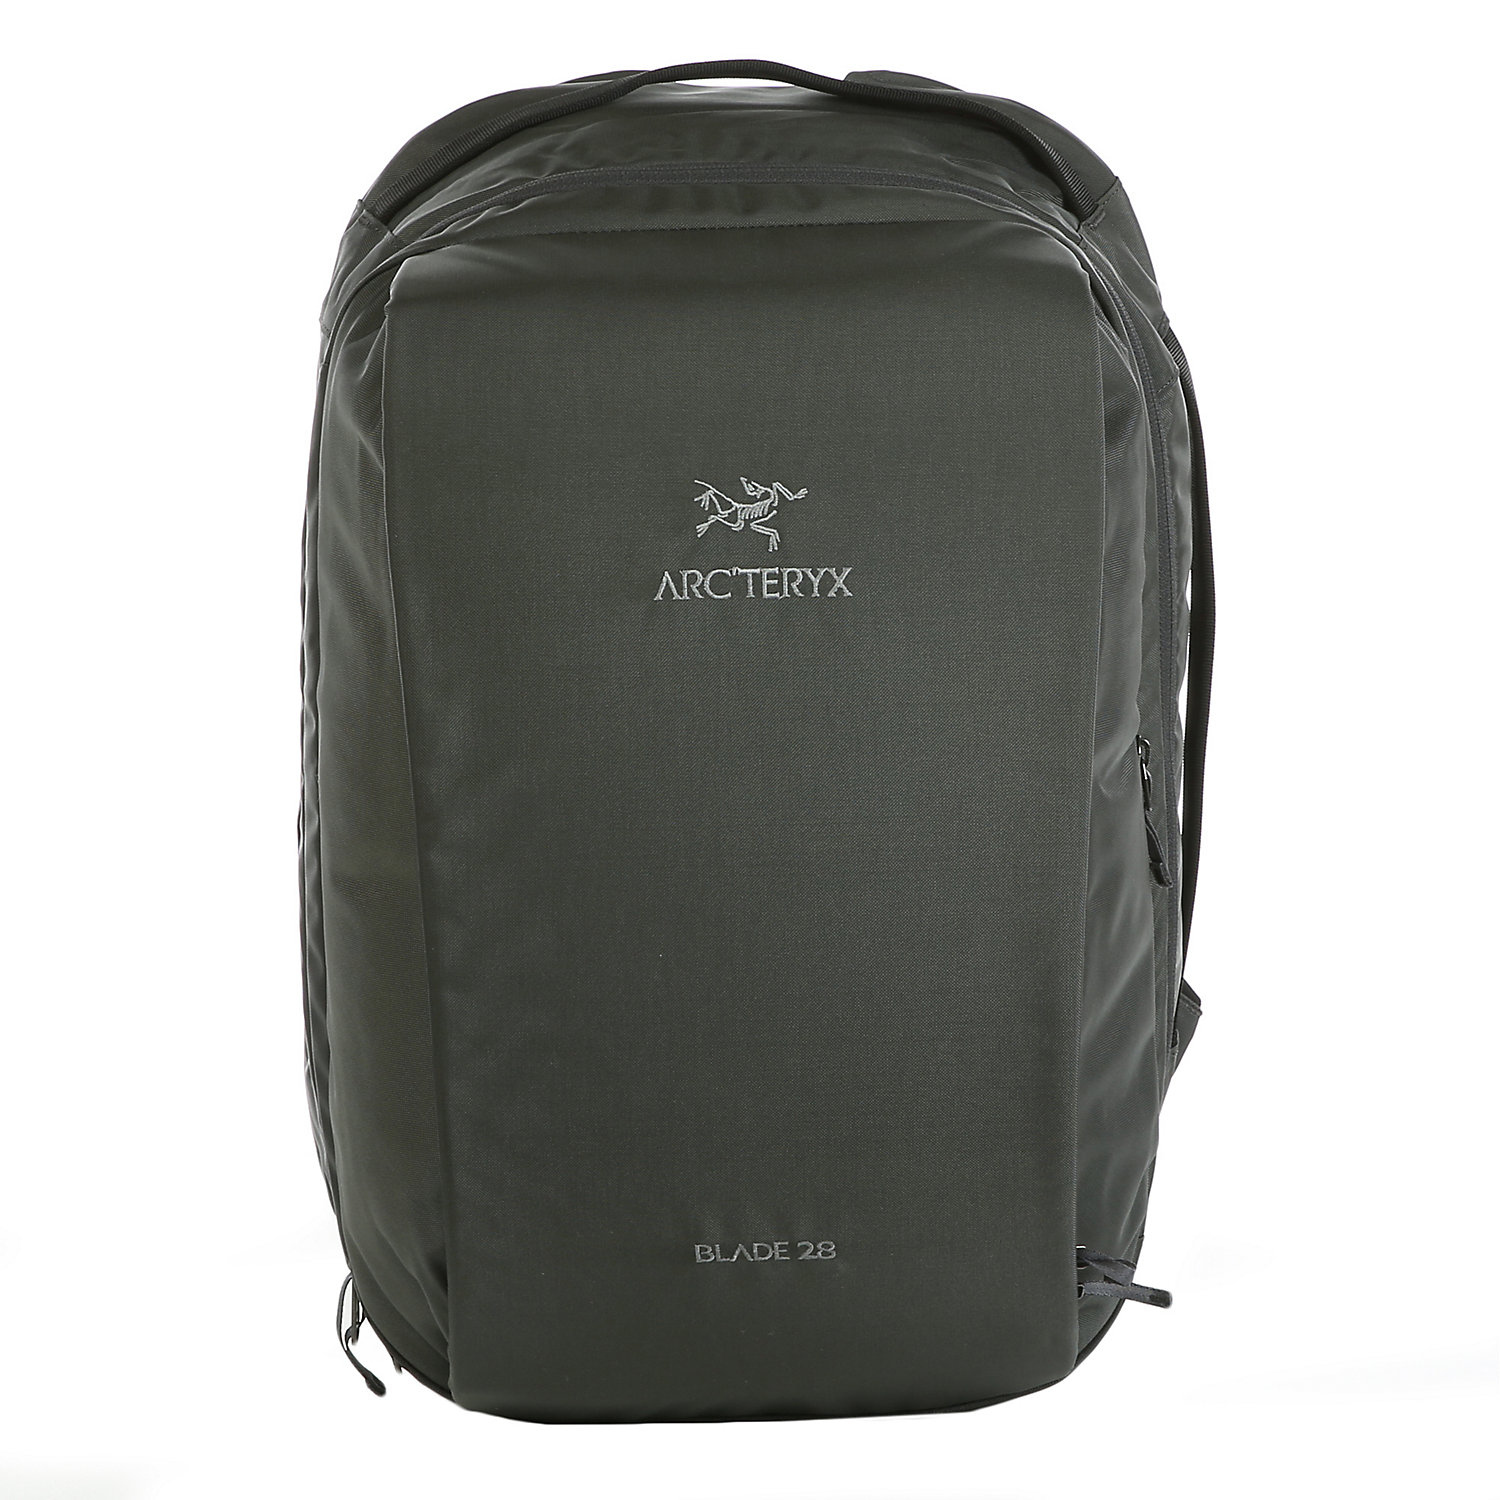 5b20835092c Arcteryx Blade 28 Backpack - Moosejaw